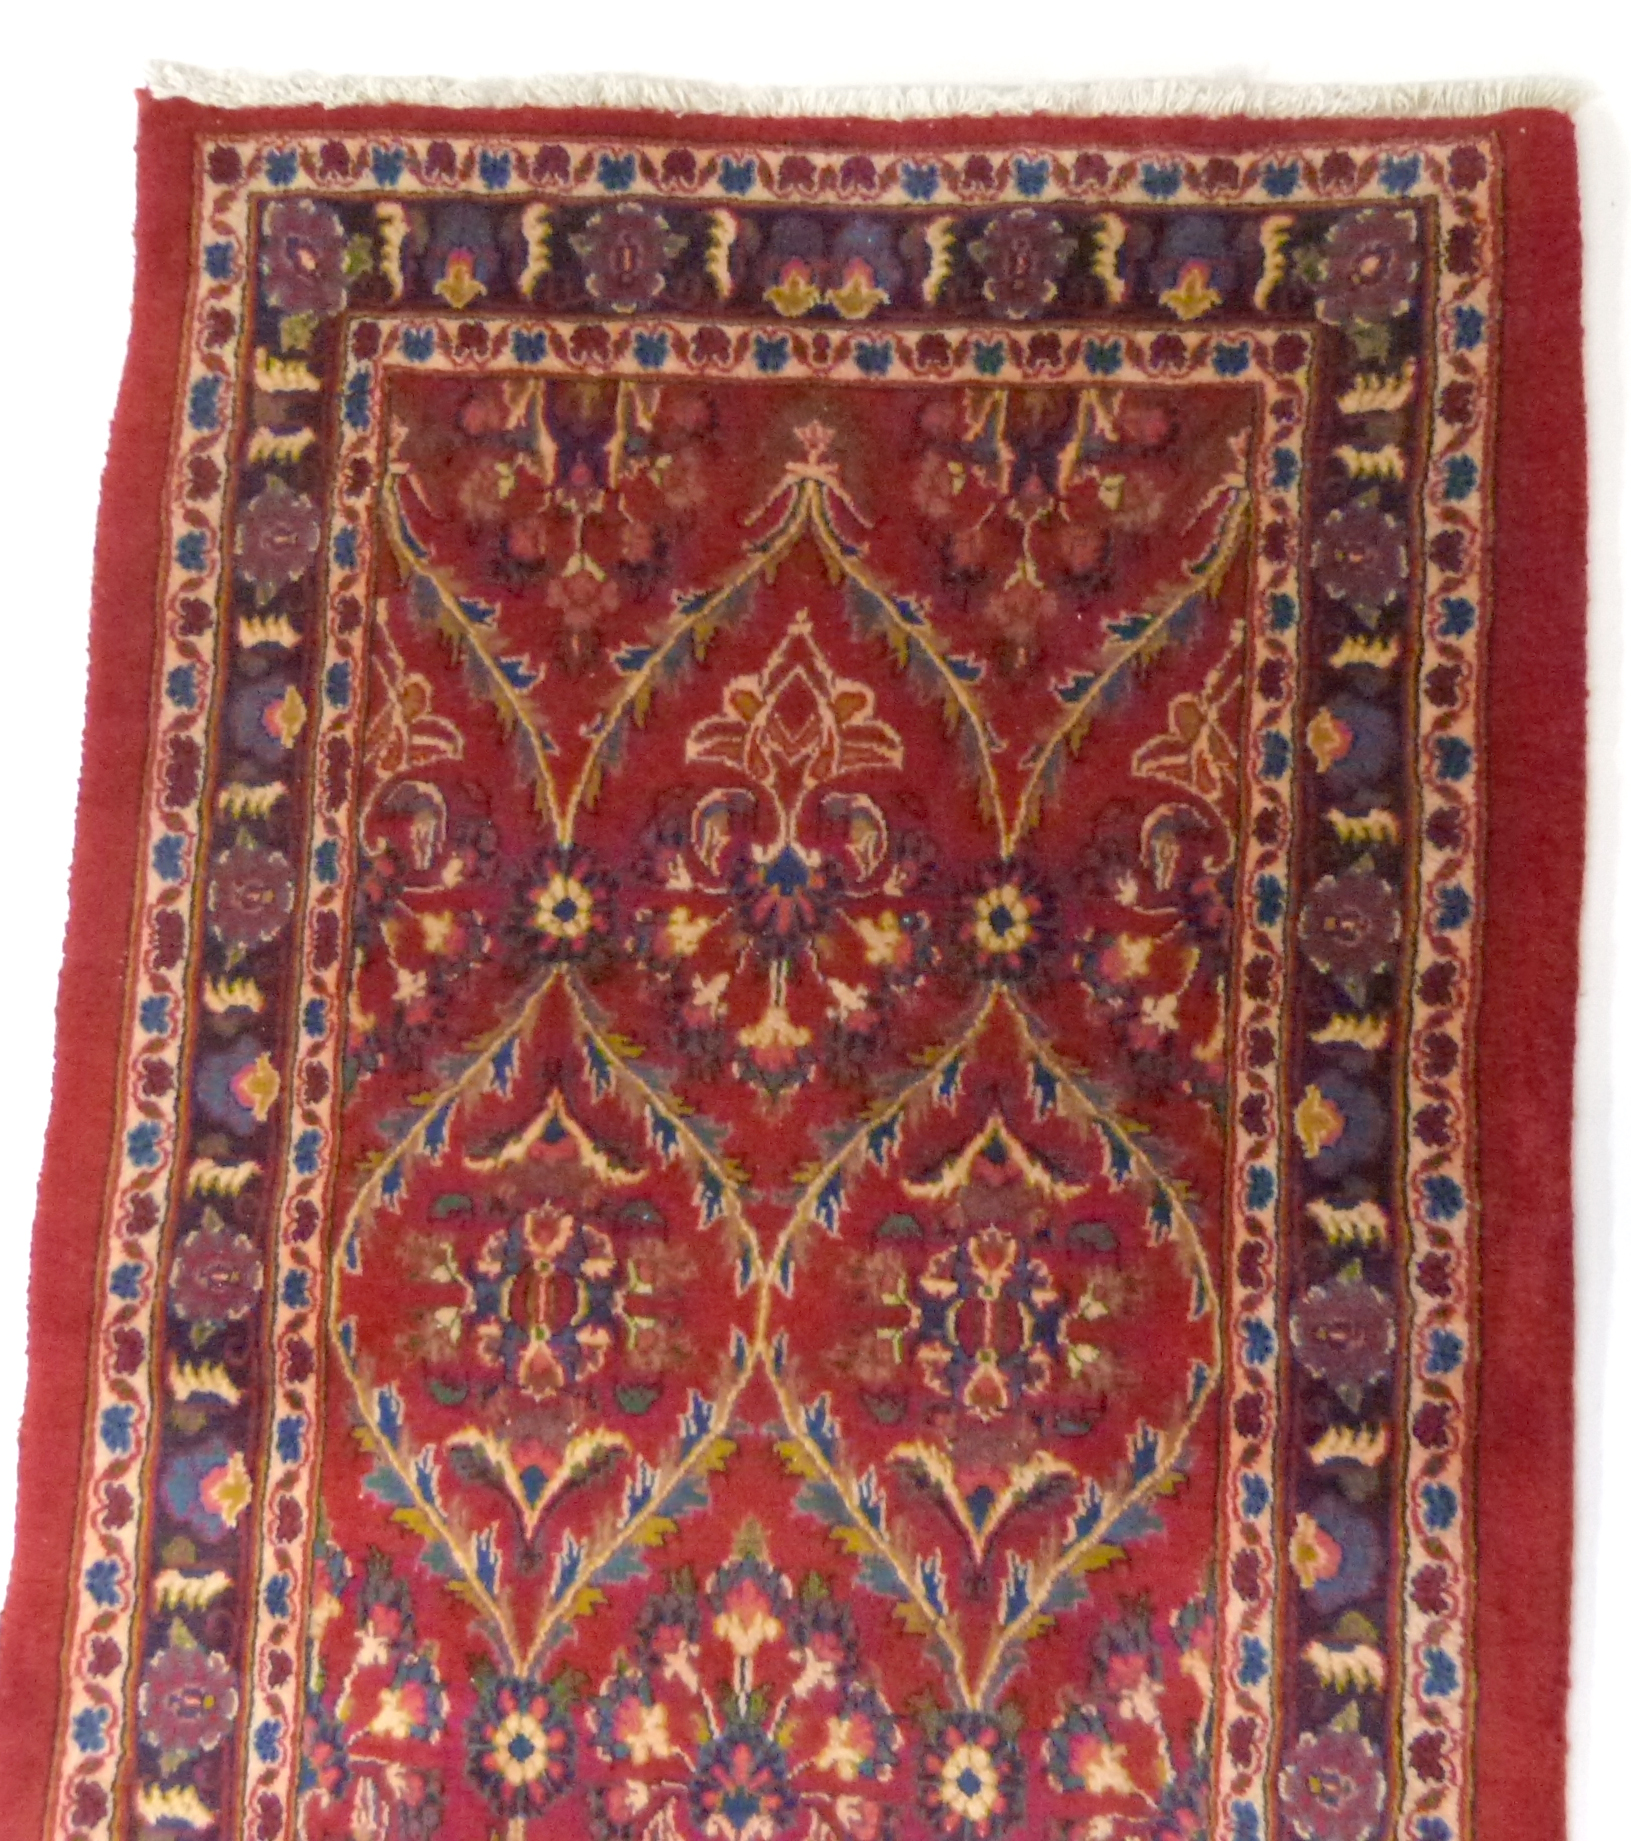 Large red ground Persian Kashan Runner, with all-over floral pattern 397cm x 93cm approximately No - Image 4 of 6